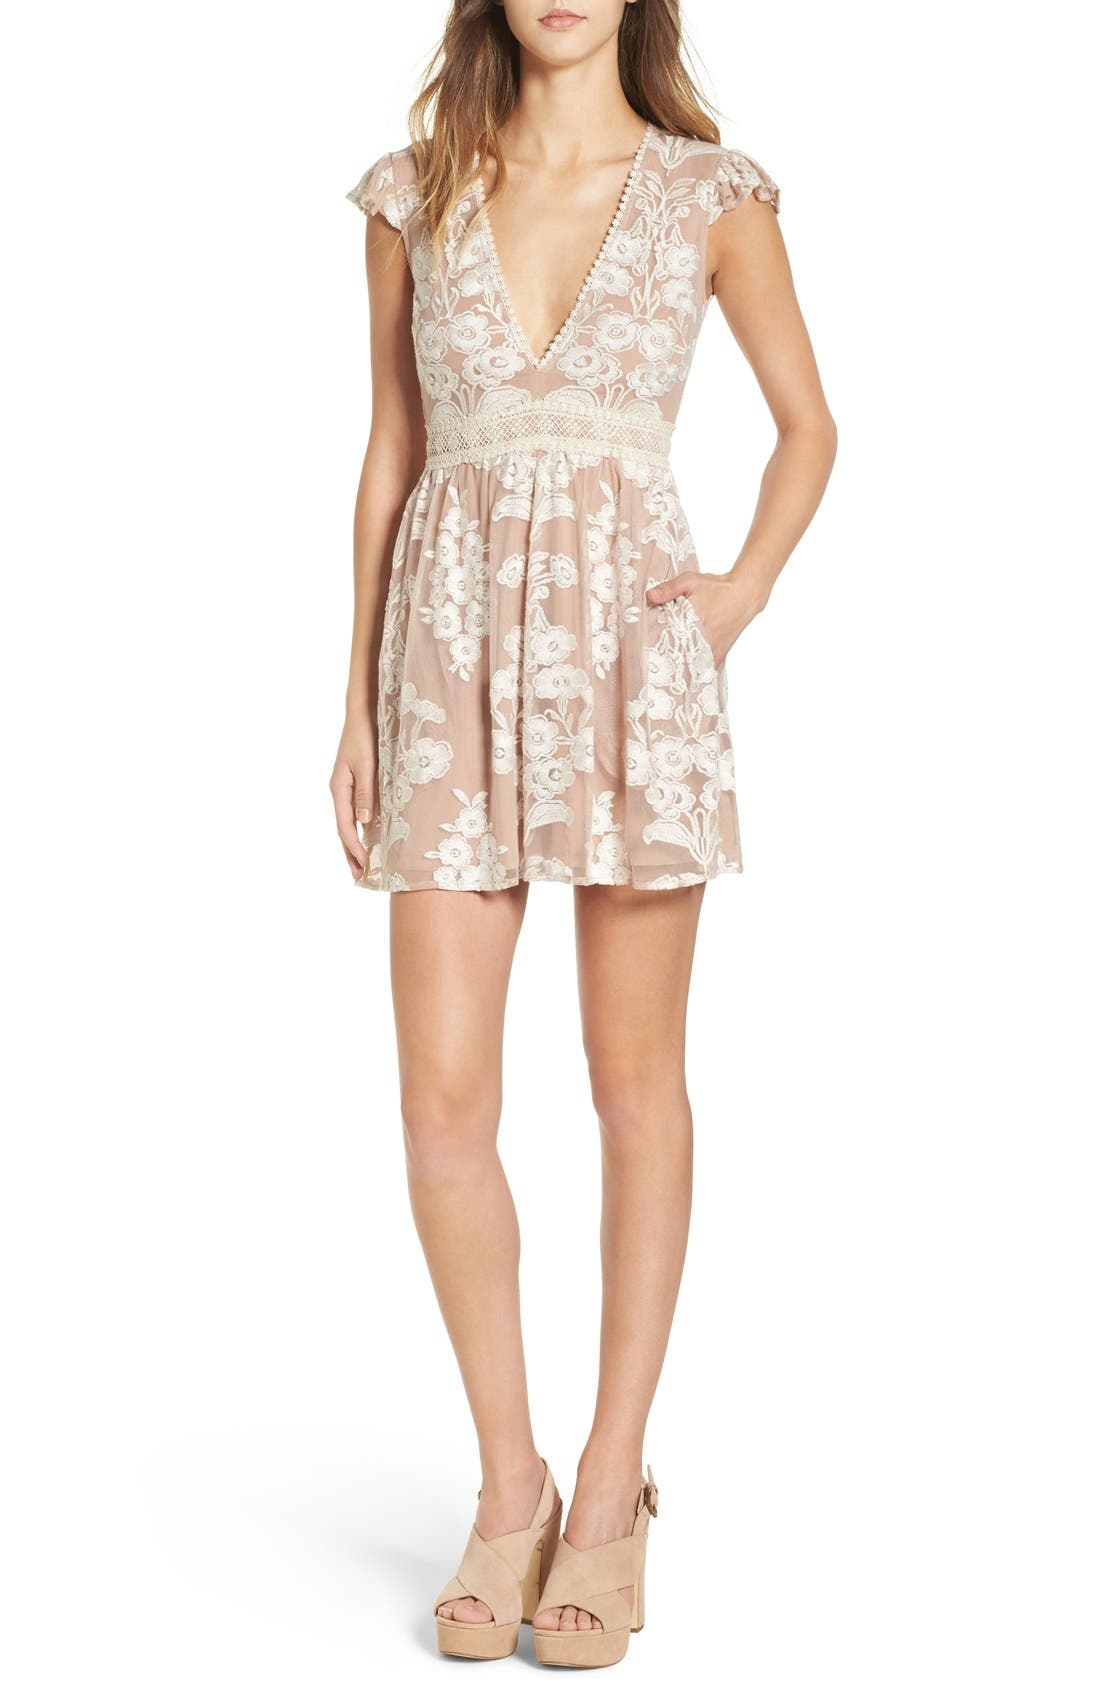 Main Image - For Love & Lemons x Nordstrom 'Salud' Embroidered Mesh Minidress (Nordstrom Exclusive)